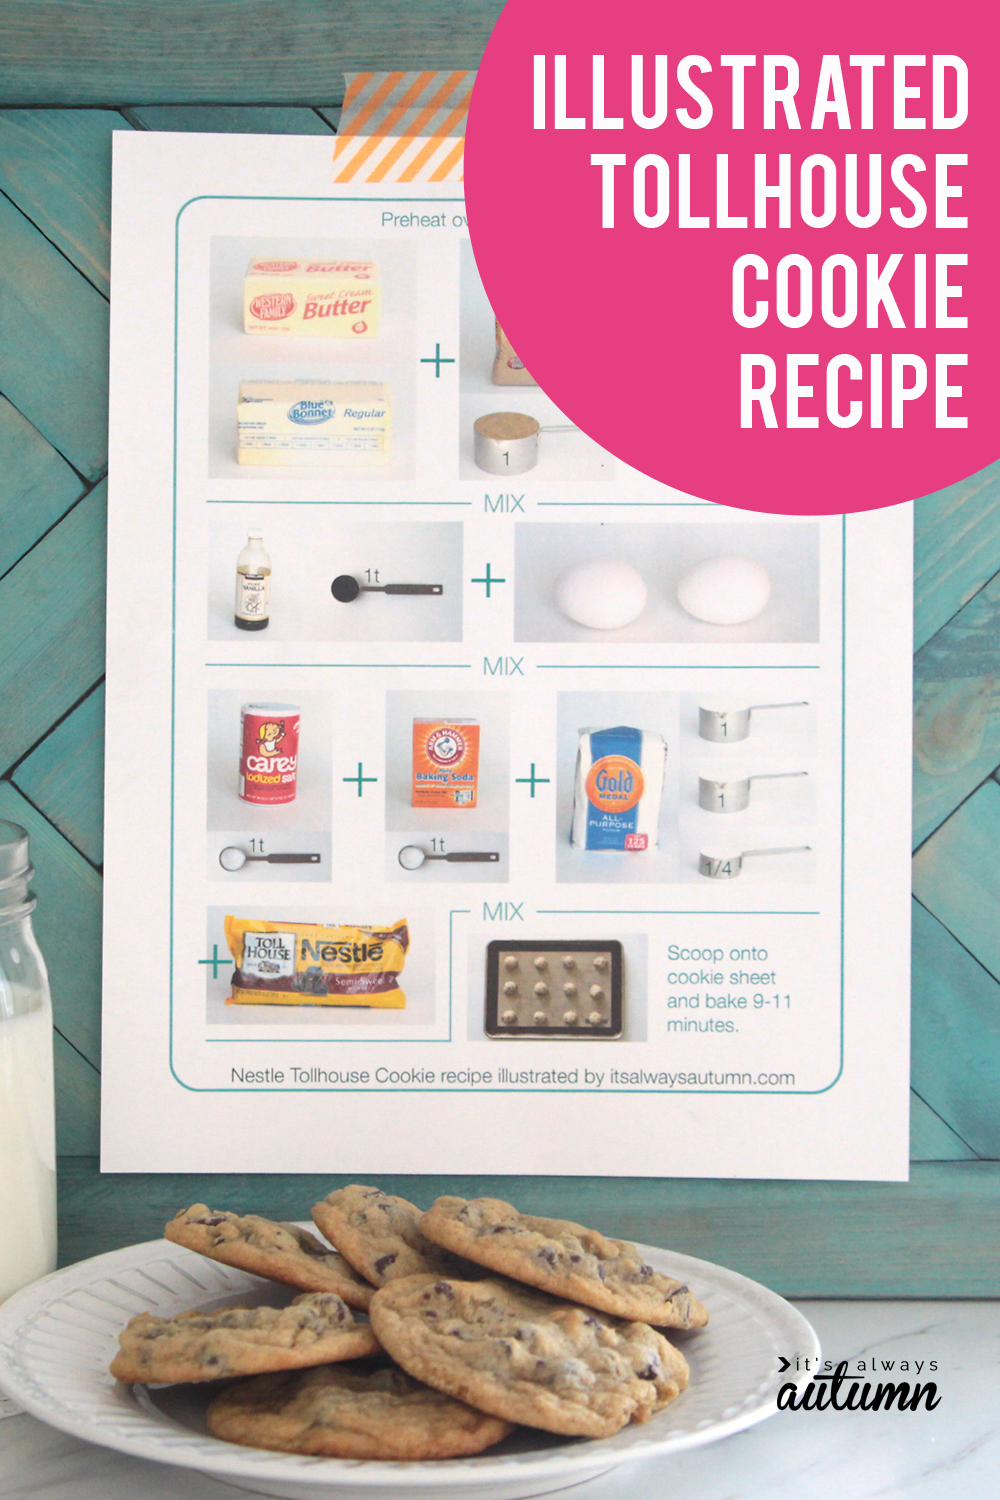 This illustrated cookie recipe makes it easy for kids to help make cookies!